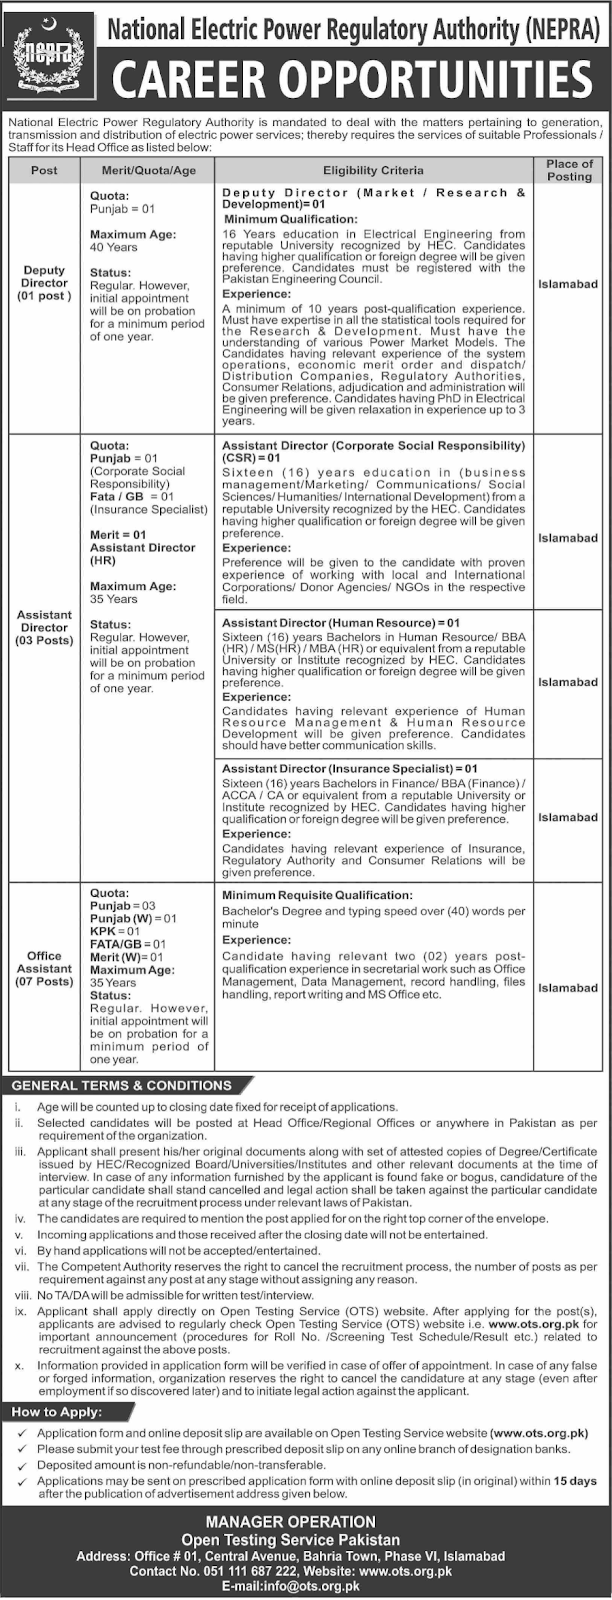 NEPRA Jobs 2020 National Electric Power Regulatory Authority Advertisement